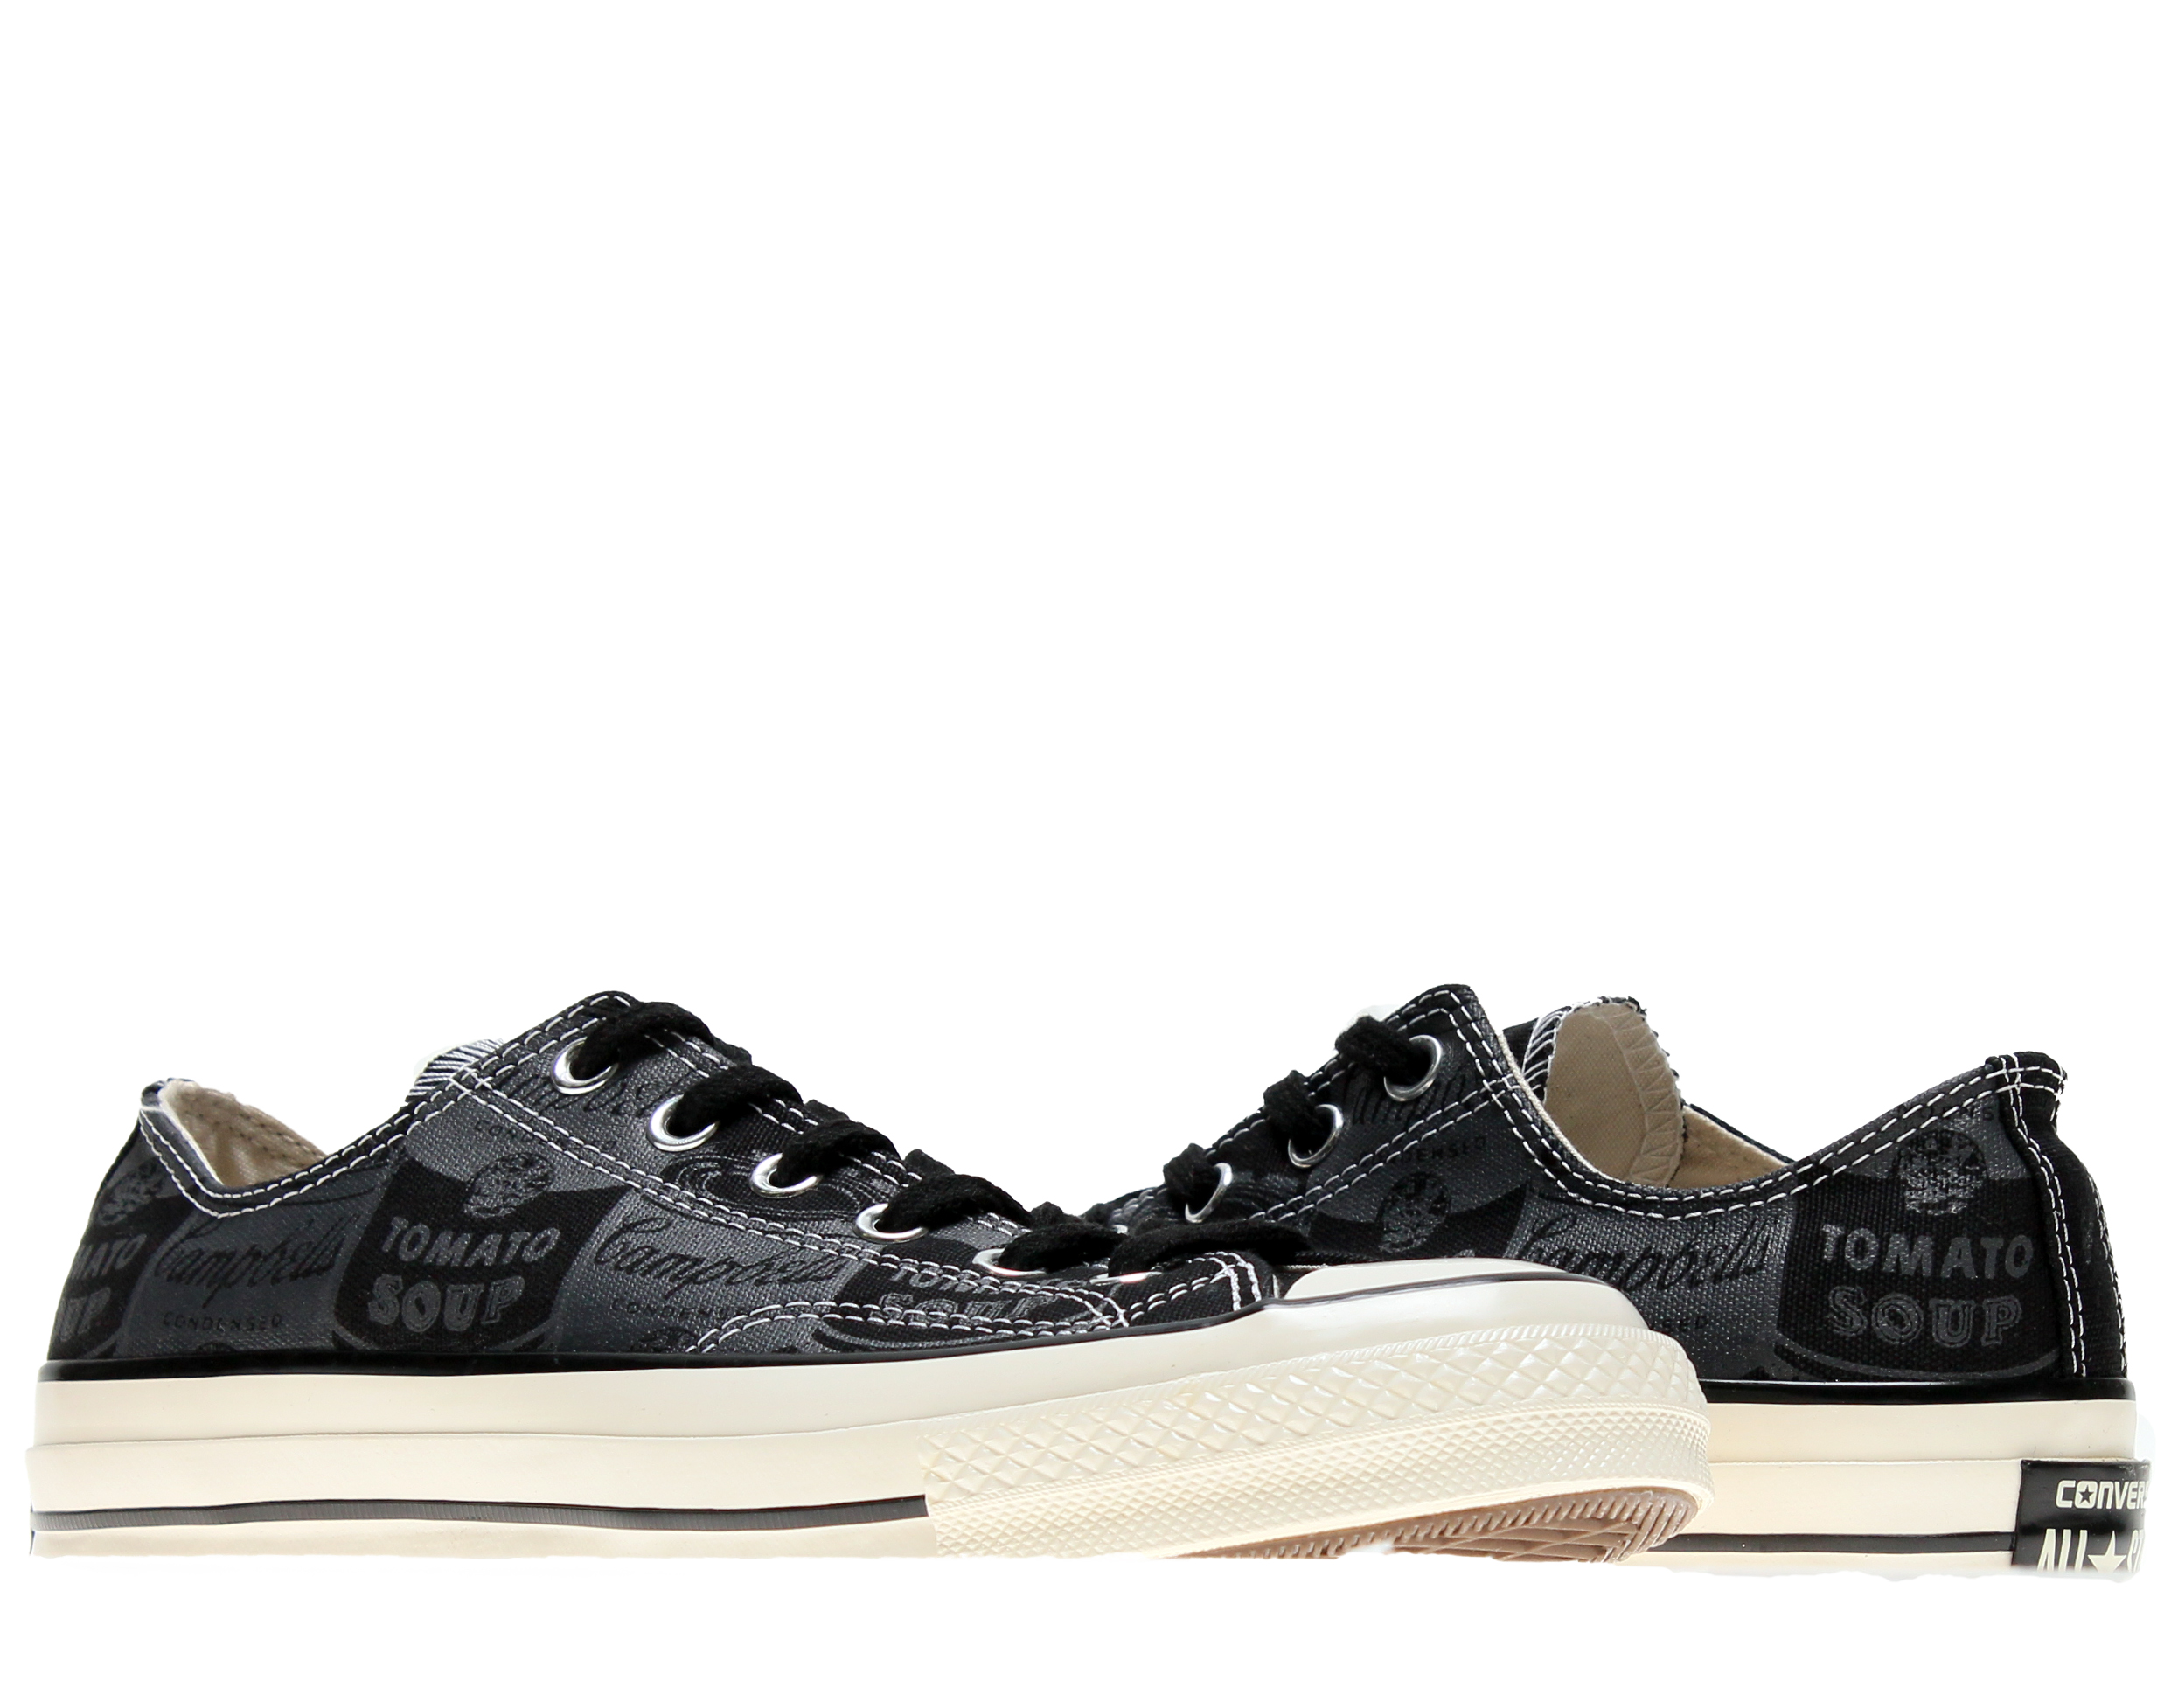 Converse Chuck Taylor All Star '70 Black Low Top Sneakers 147123C by